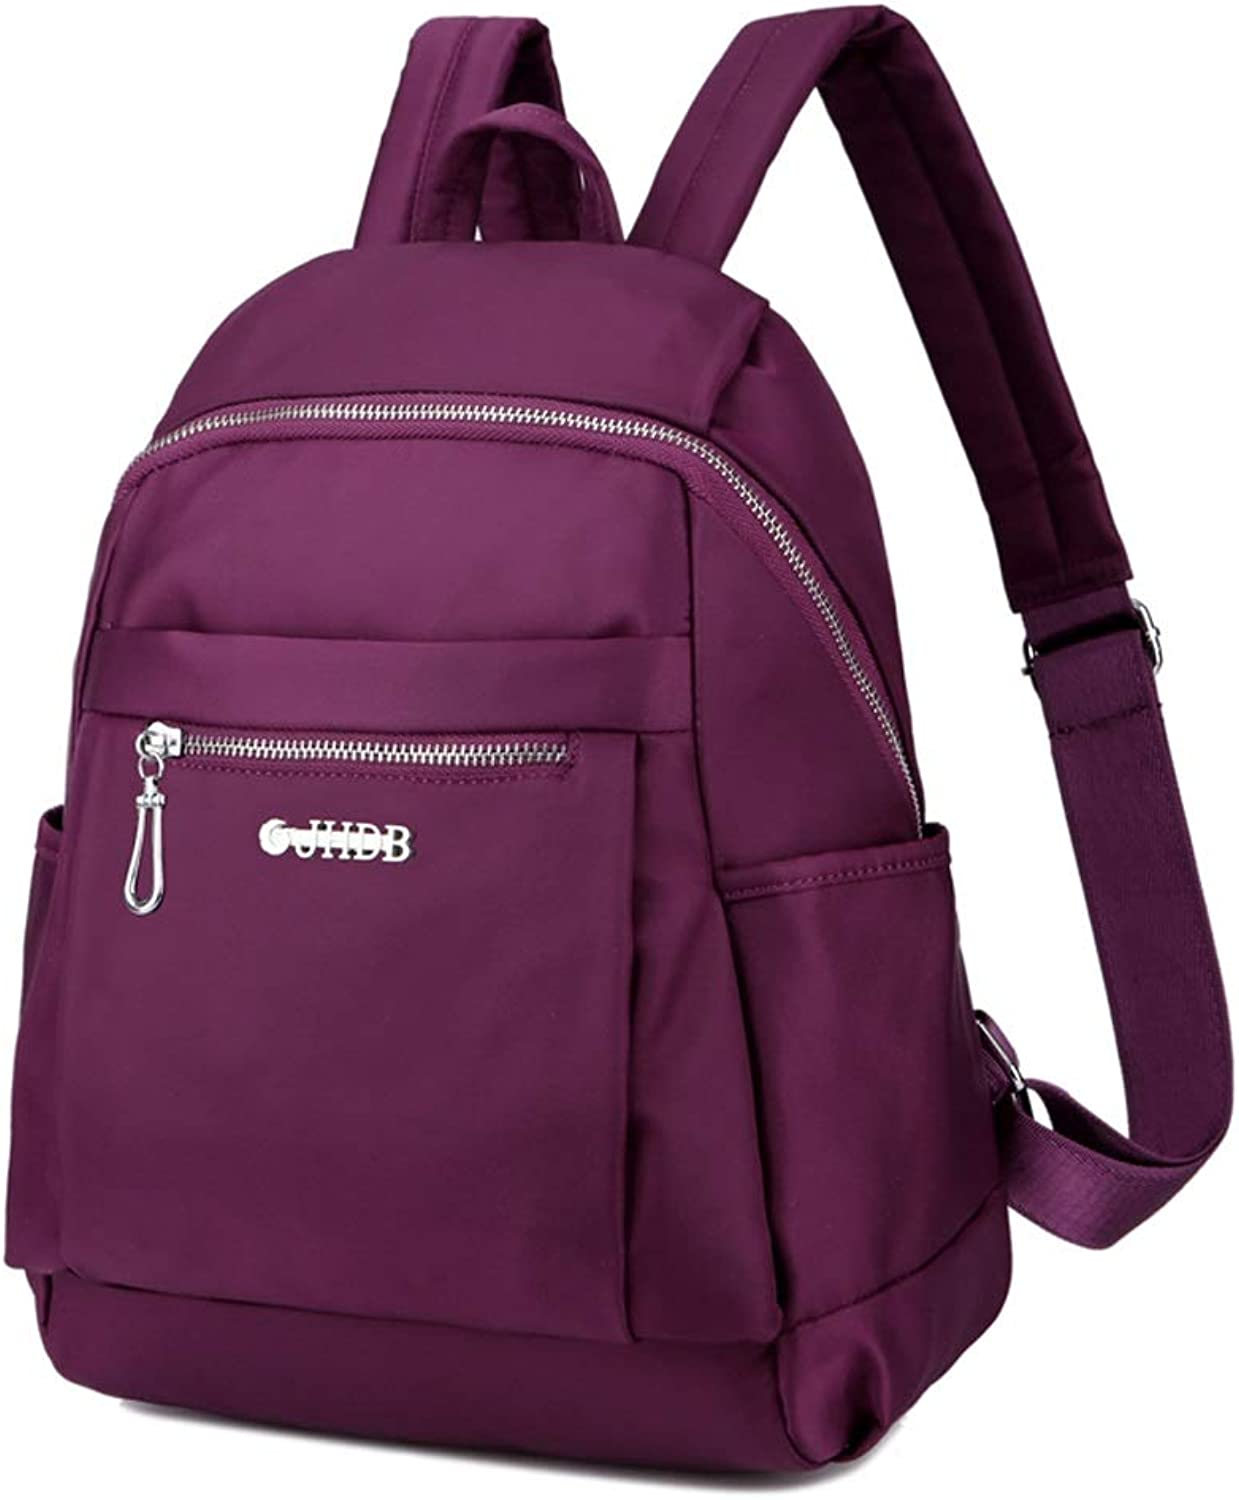 MultiFunction WaterRepellent Backpack, Outdoor Travel Climbing Knapsack, Men's and Women's Student School High School Students Bag, Casual Business Rucksack (color   Purple)